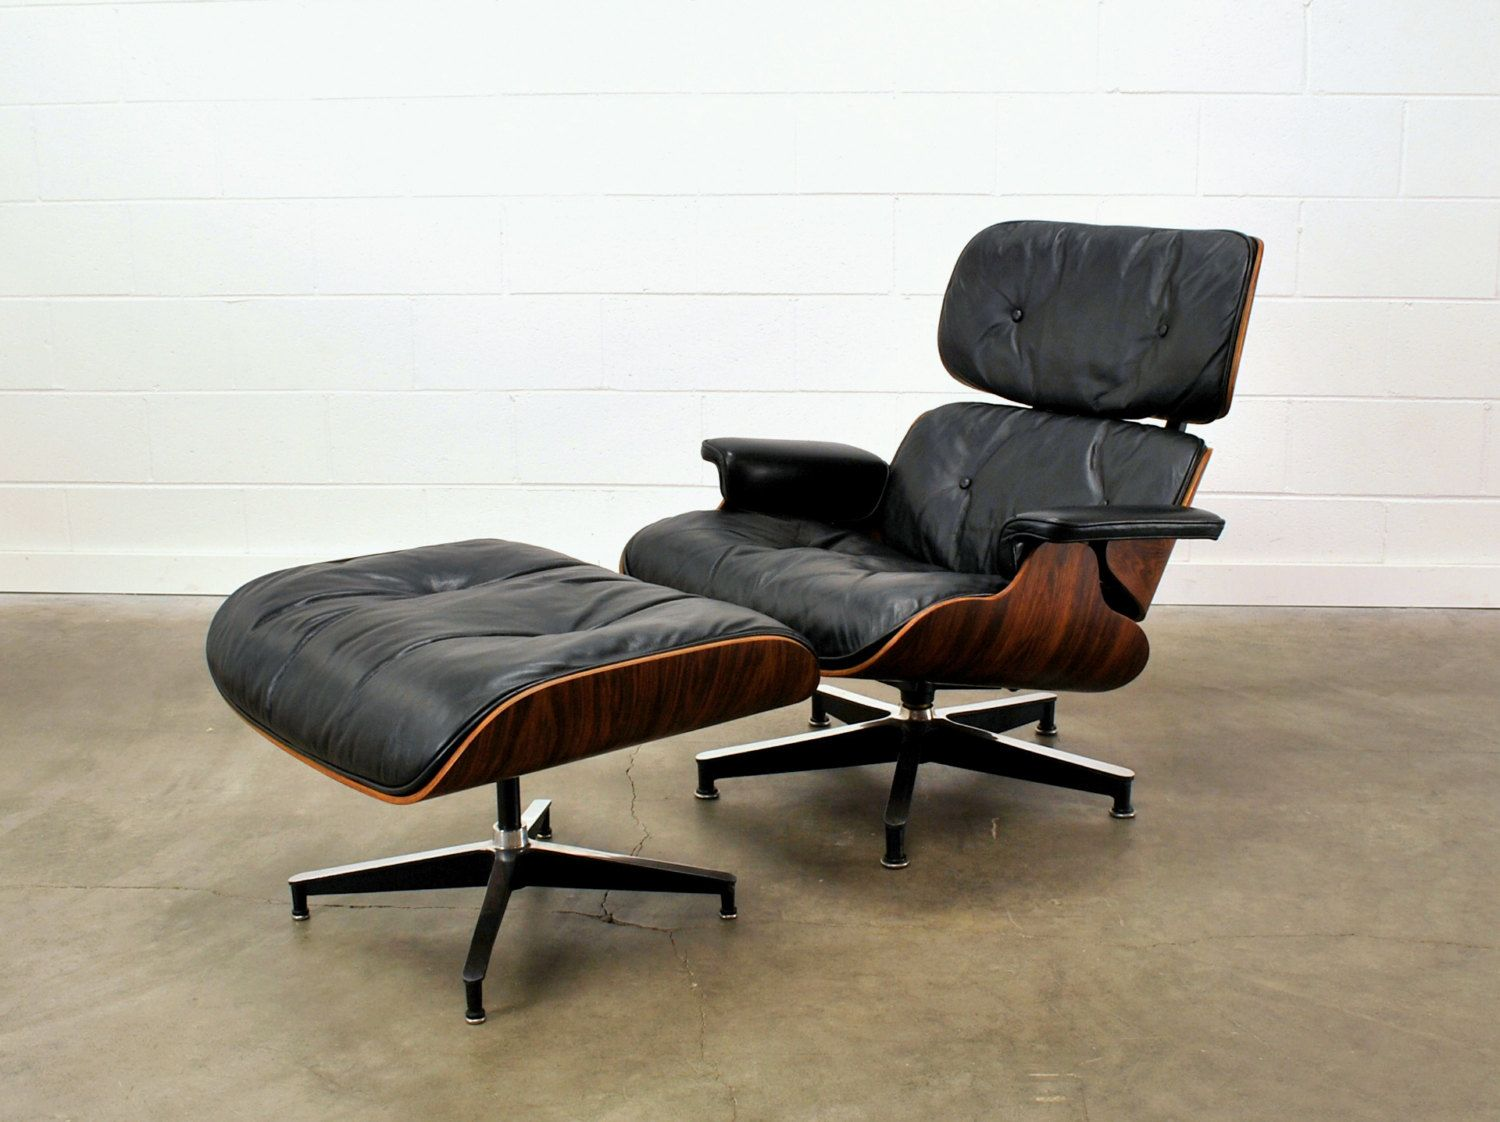 1950 S Eames Lounge Chair Brazilian Rosewood And By Madsenmodern 4 595 00 Eames Lounge Chair Lounge Chair Chair And Ottoman